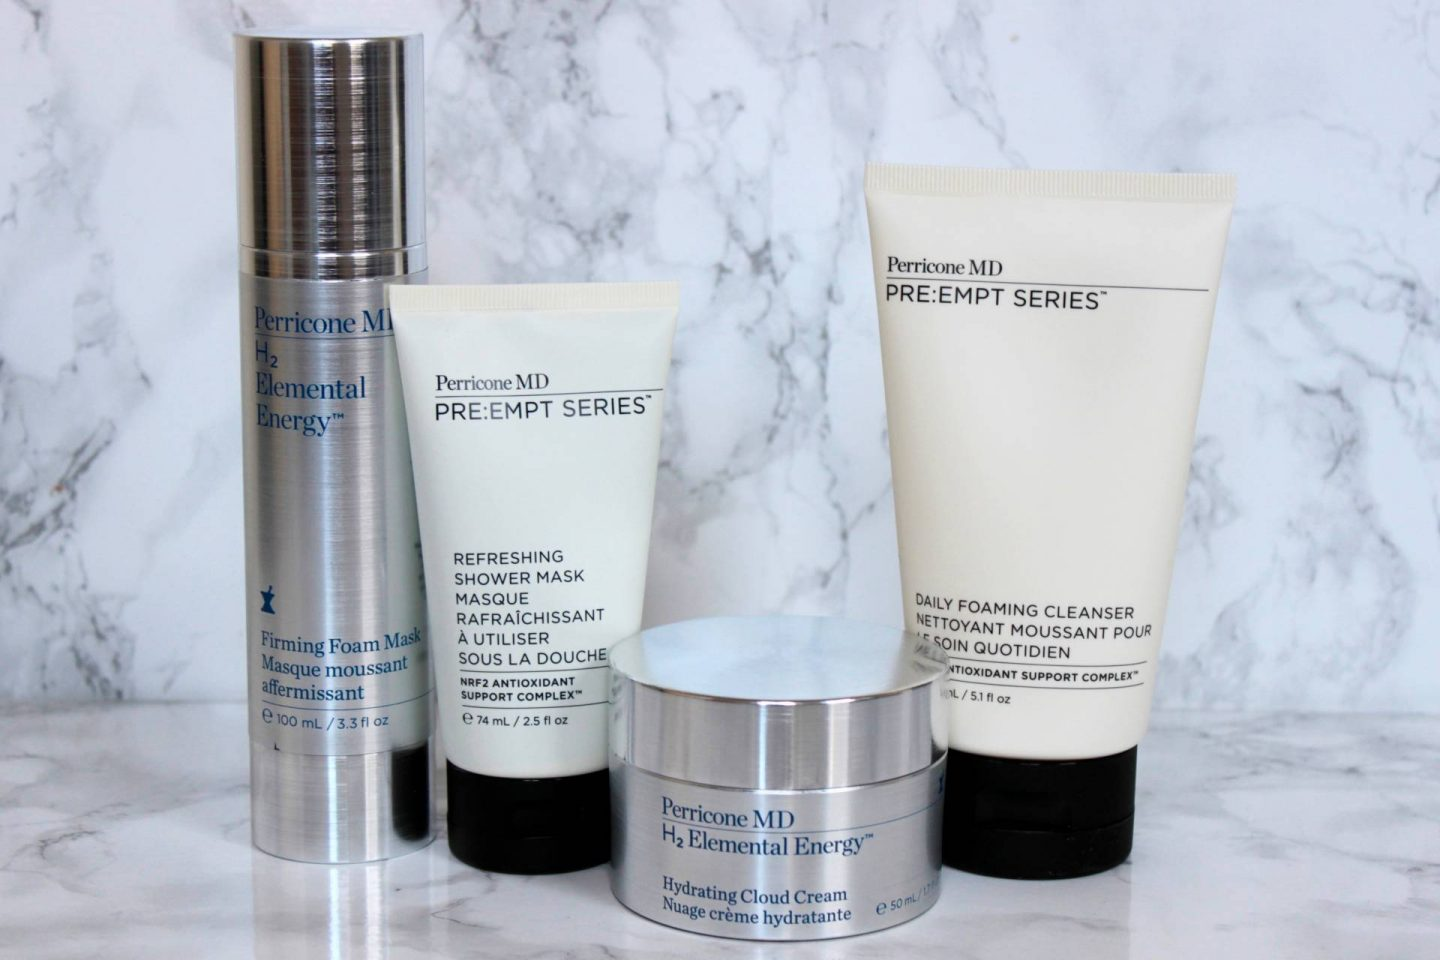 Perricone MD new launches